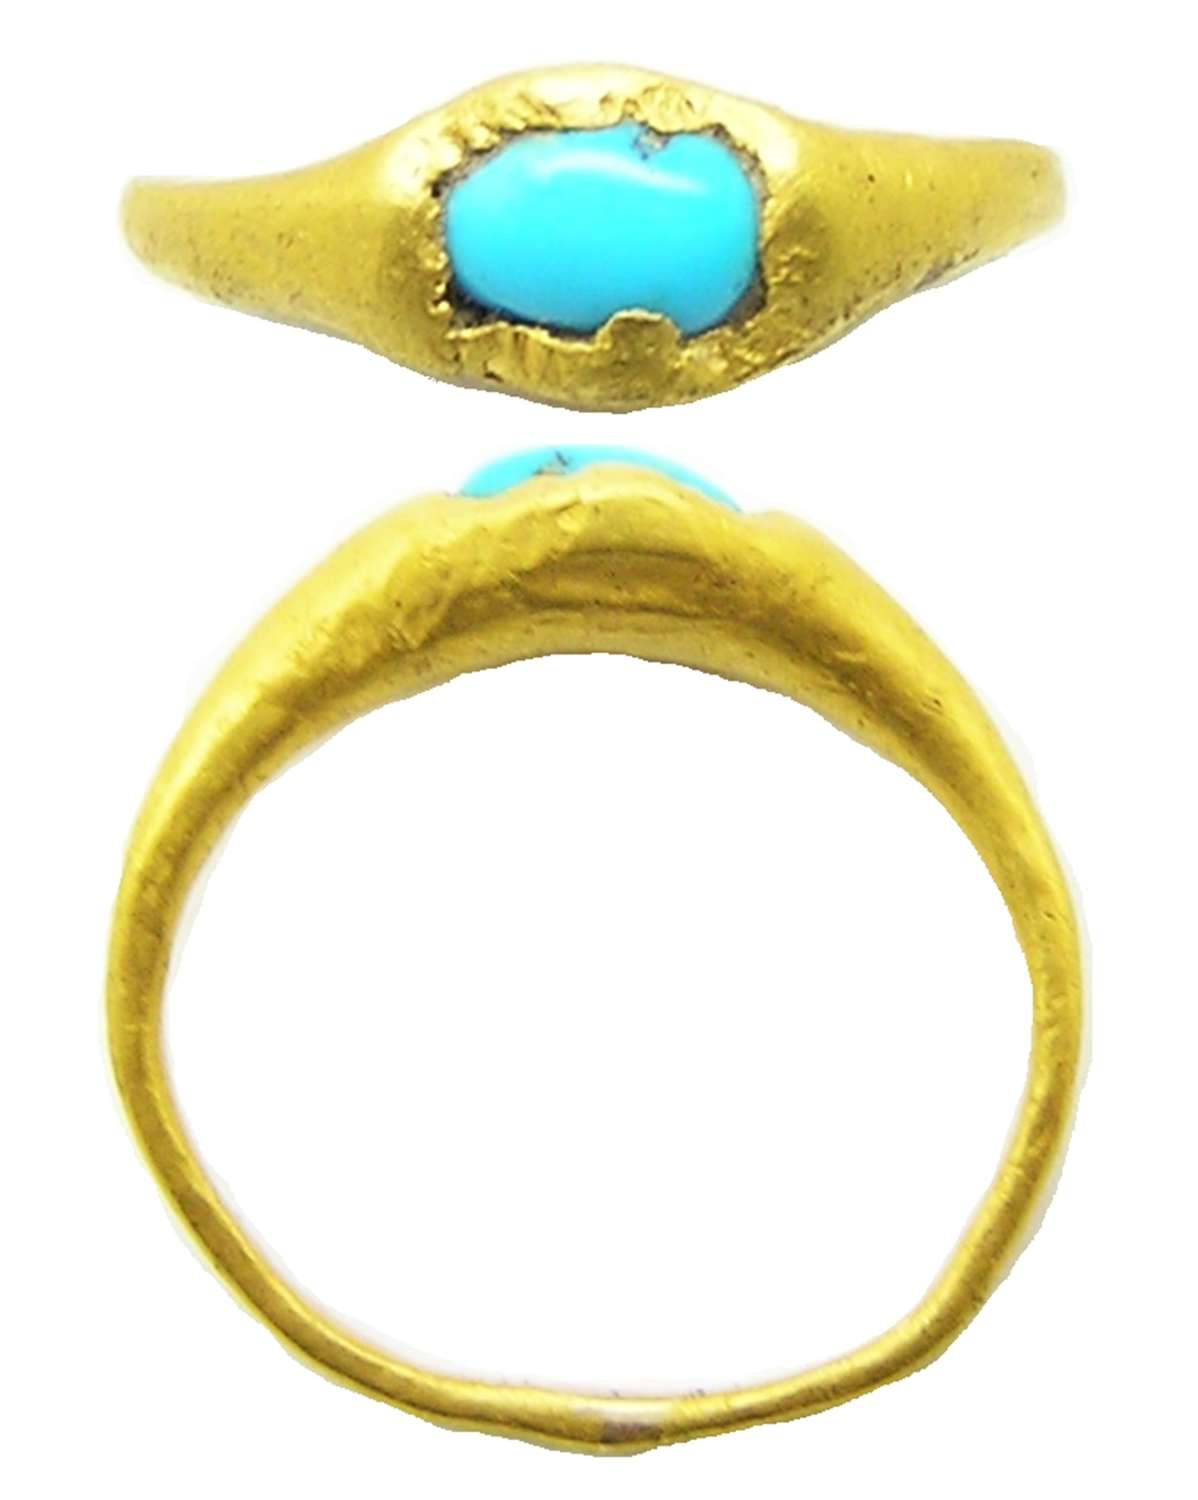 Medieval Gold & Turquoise Finger Ring